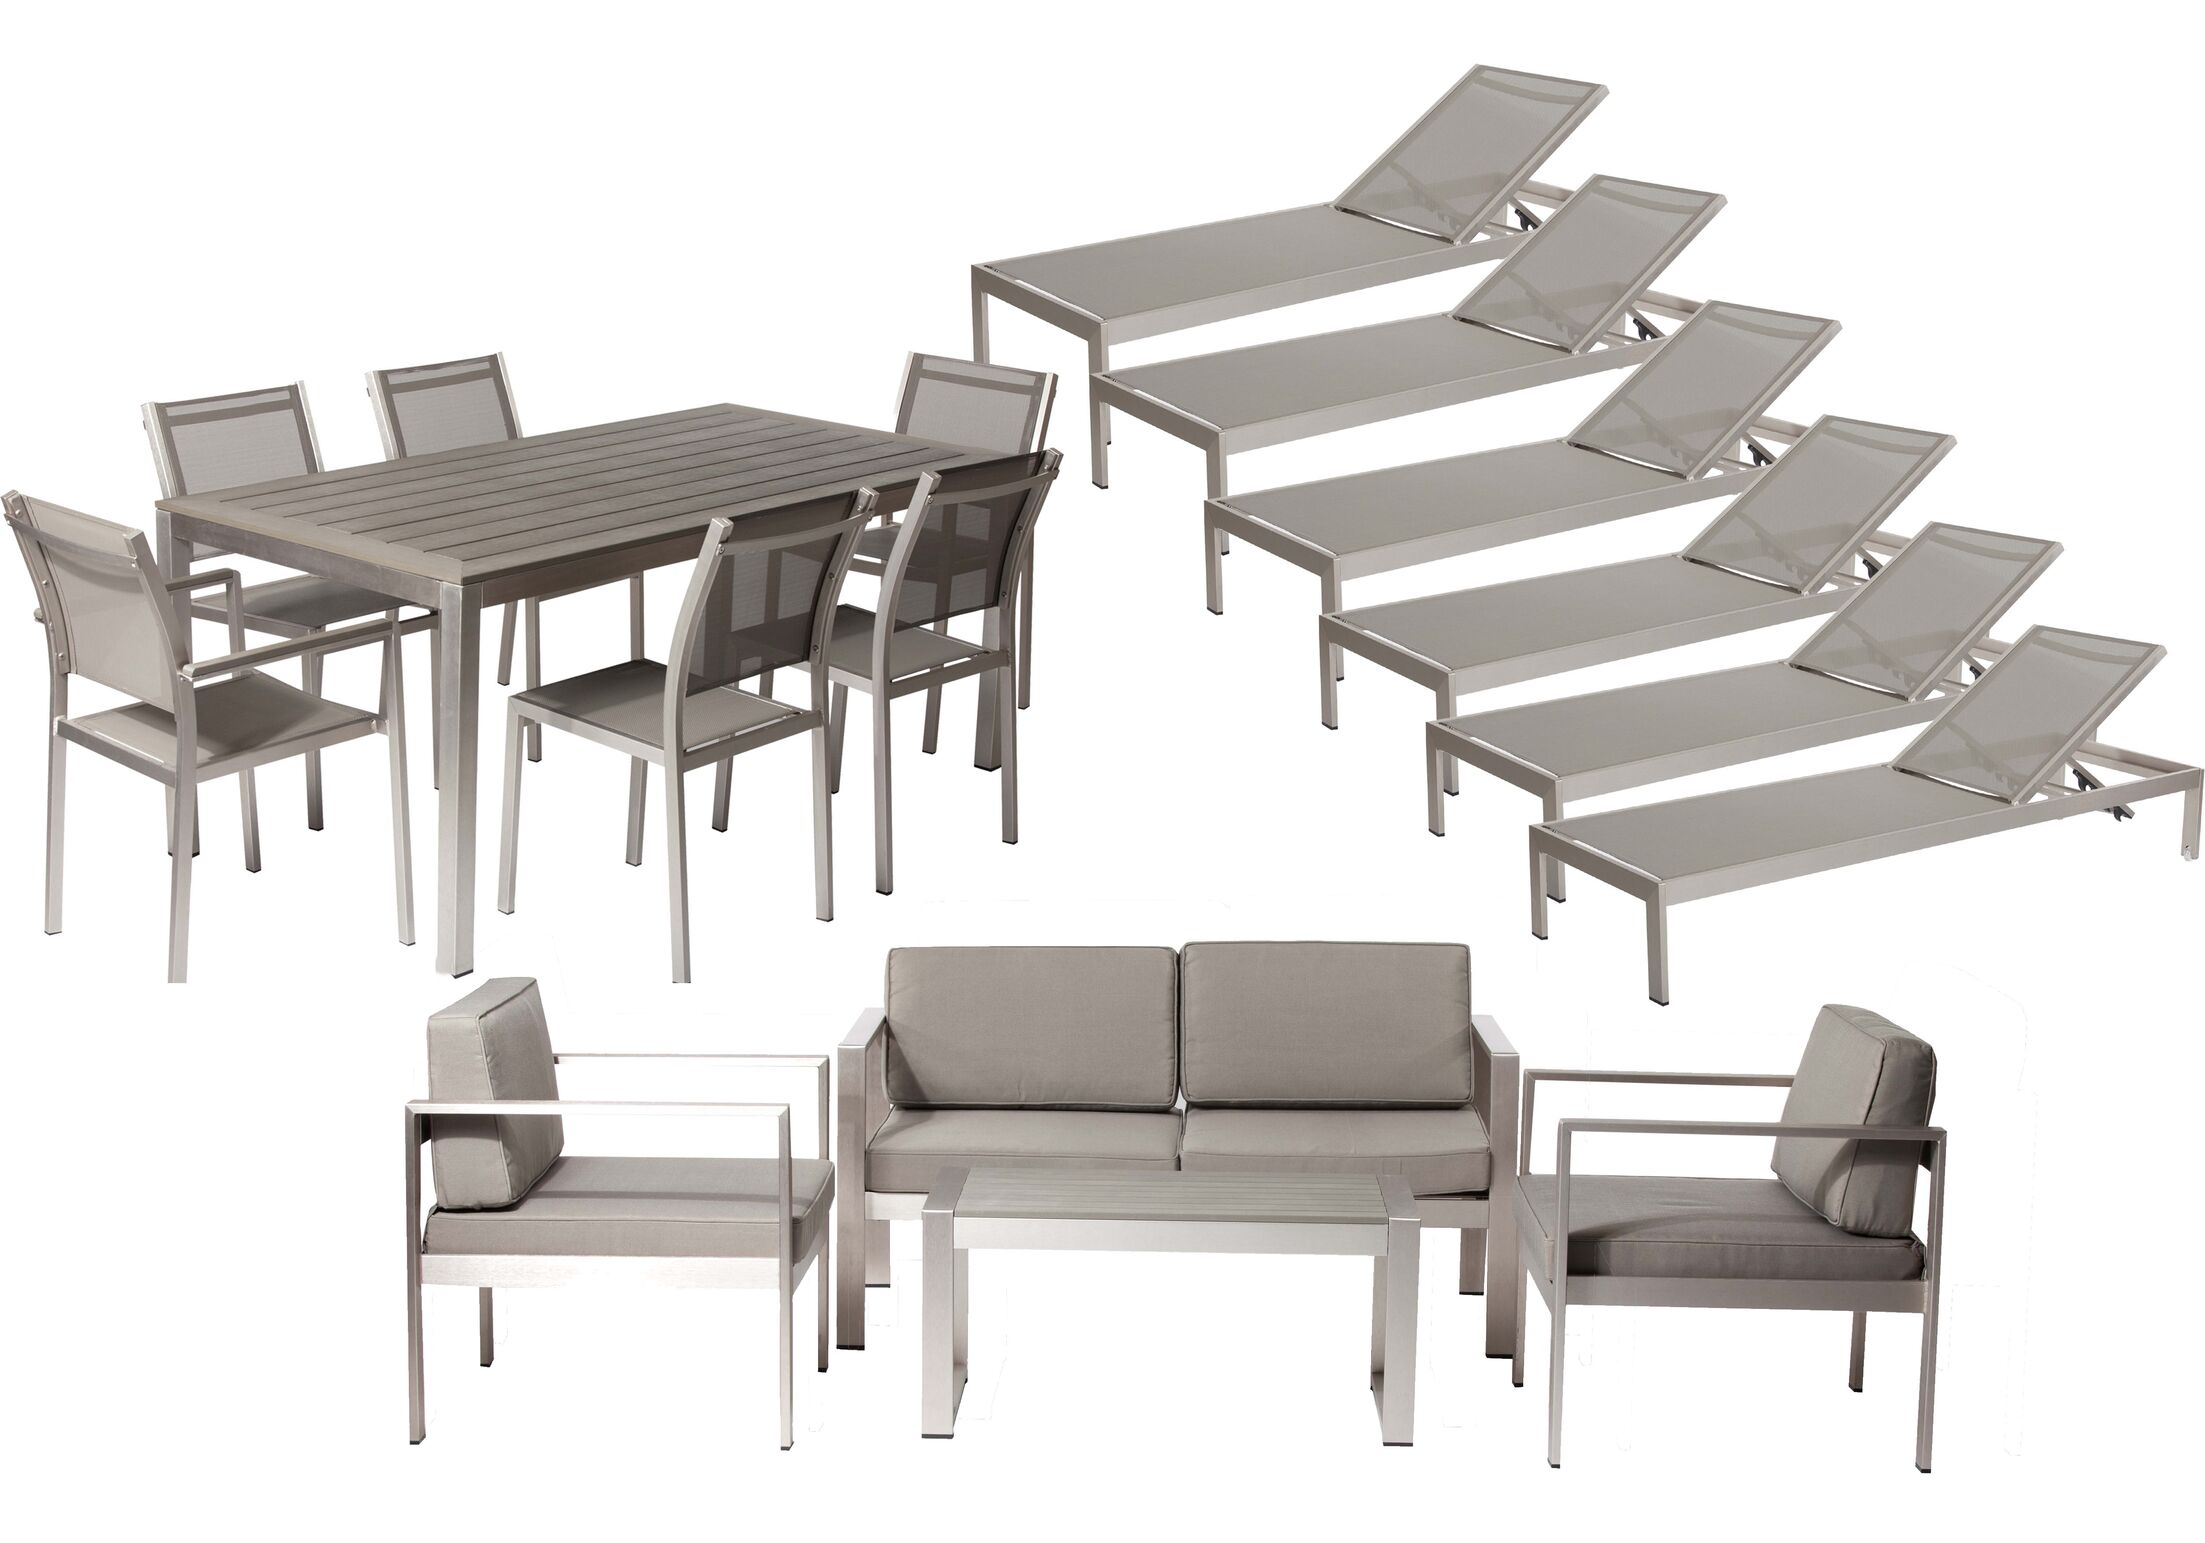 Hillwood 17 Piece Conversation Set with Cushions Color: Gray